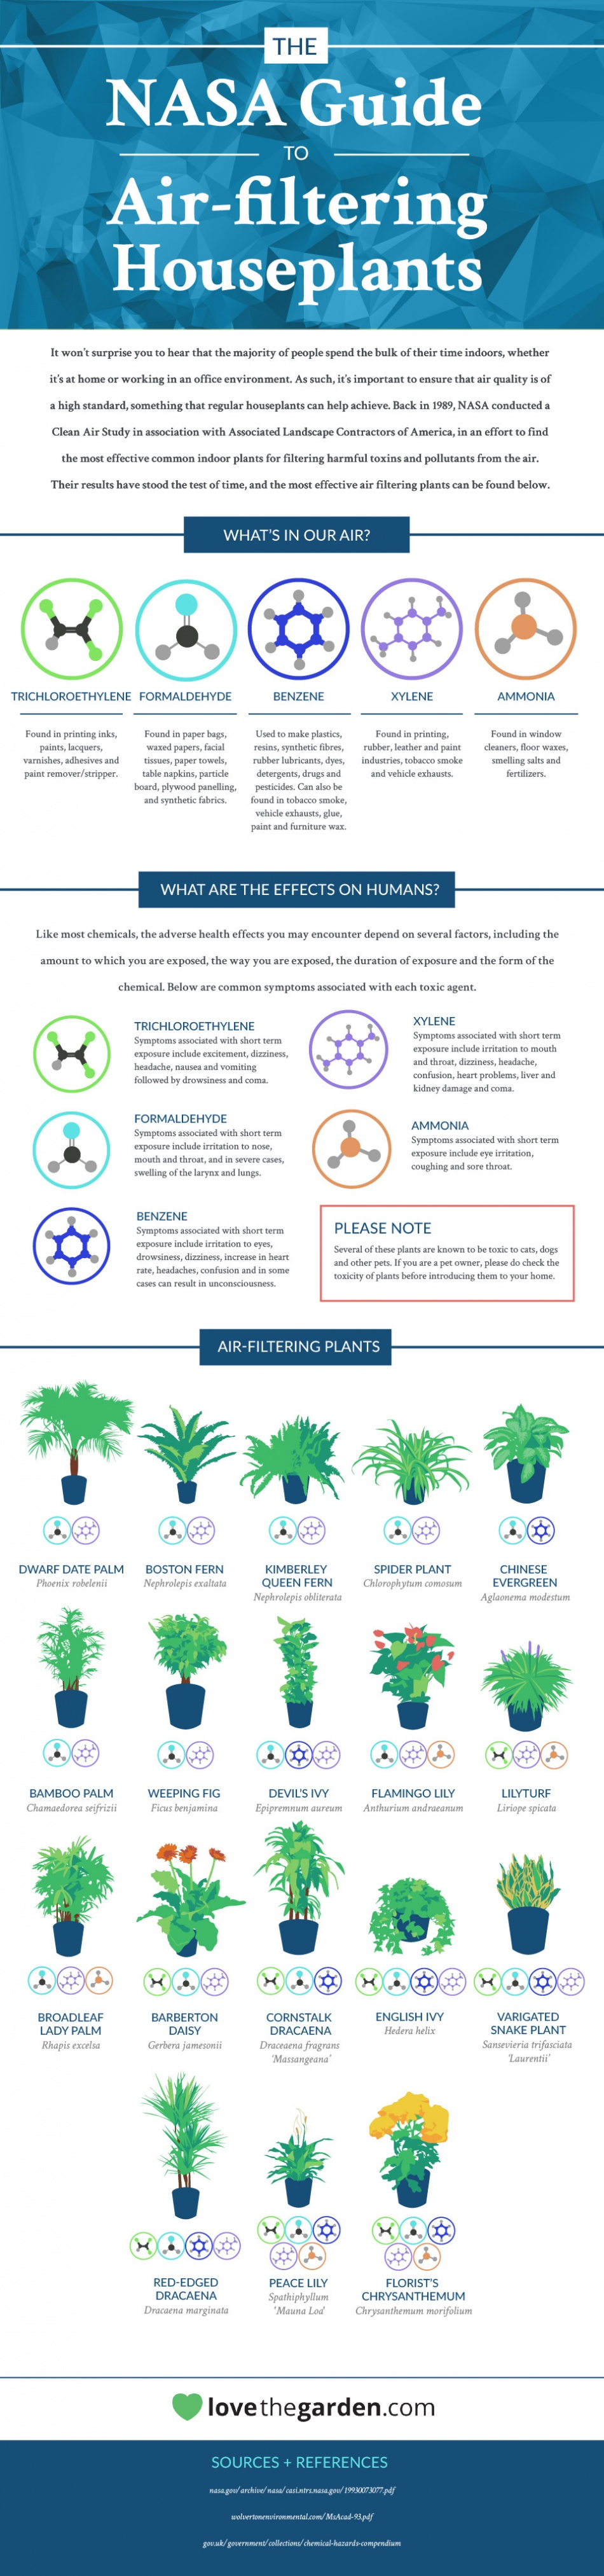 NASA guide to air-filtering houseplants, infographic by LoveAndGarden.com